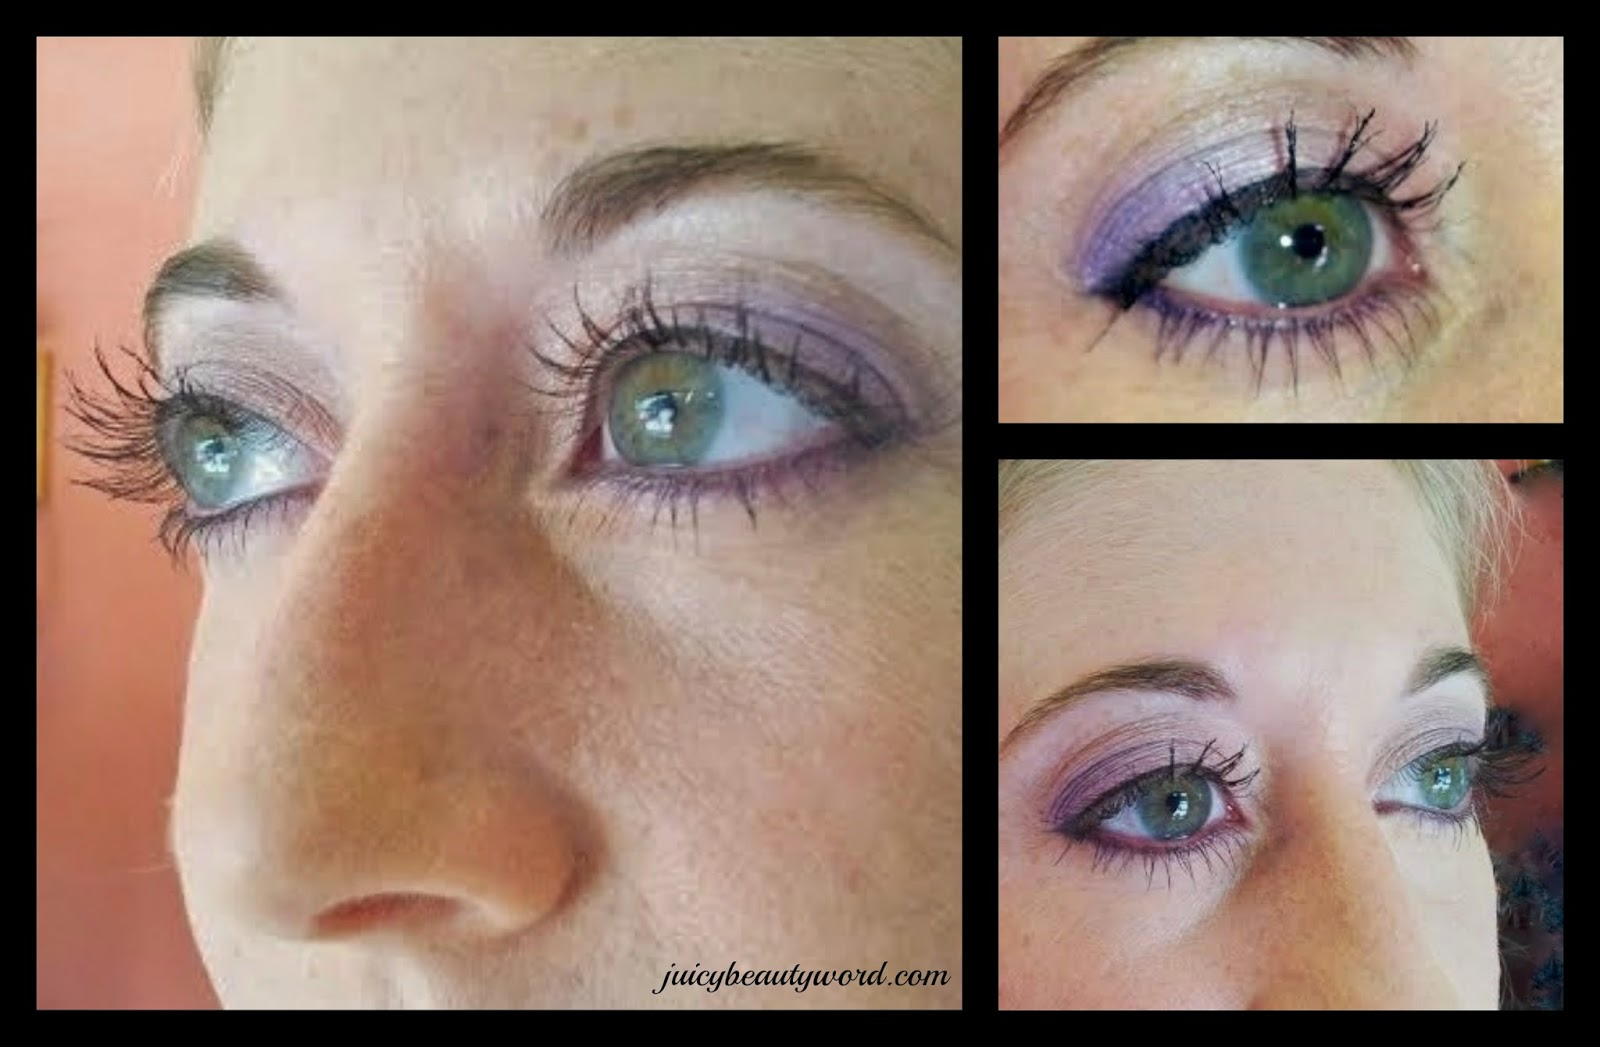 cherry blooms lash extending mascara on lashes